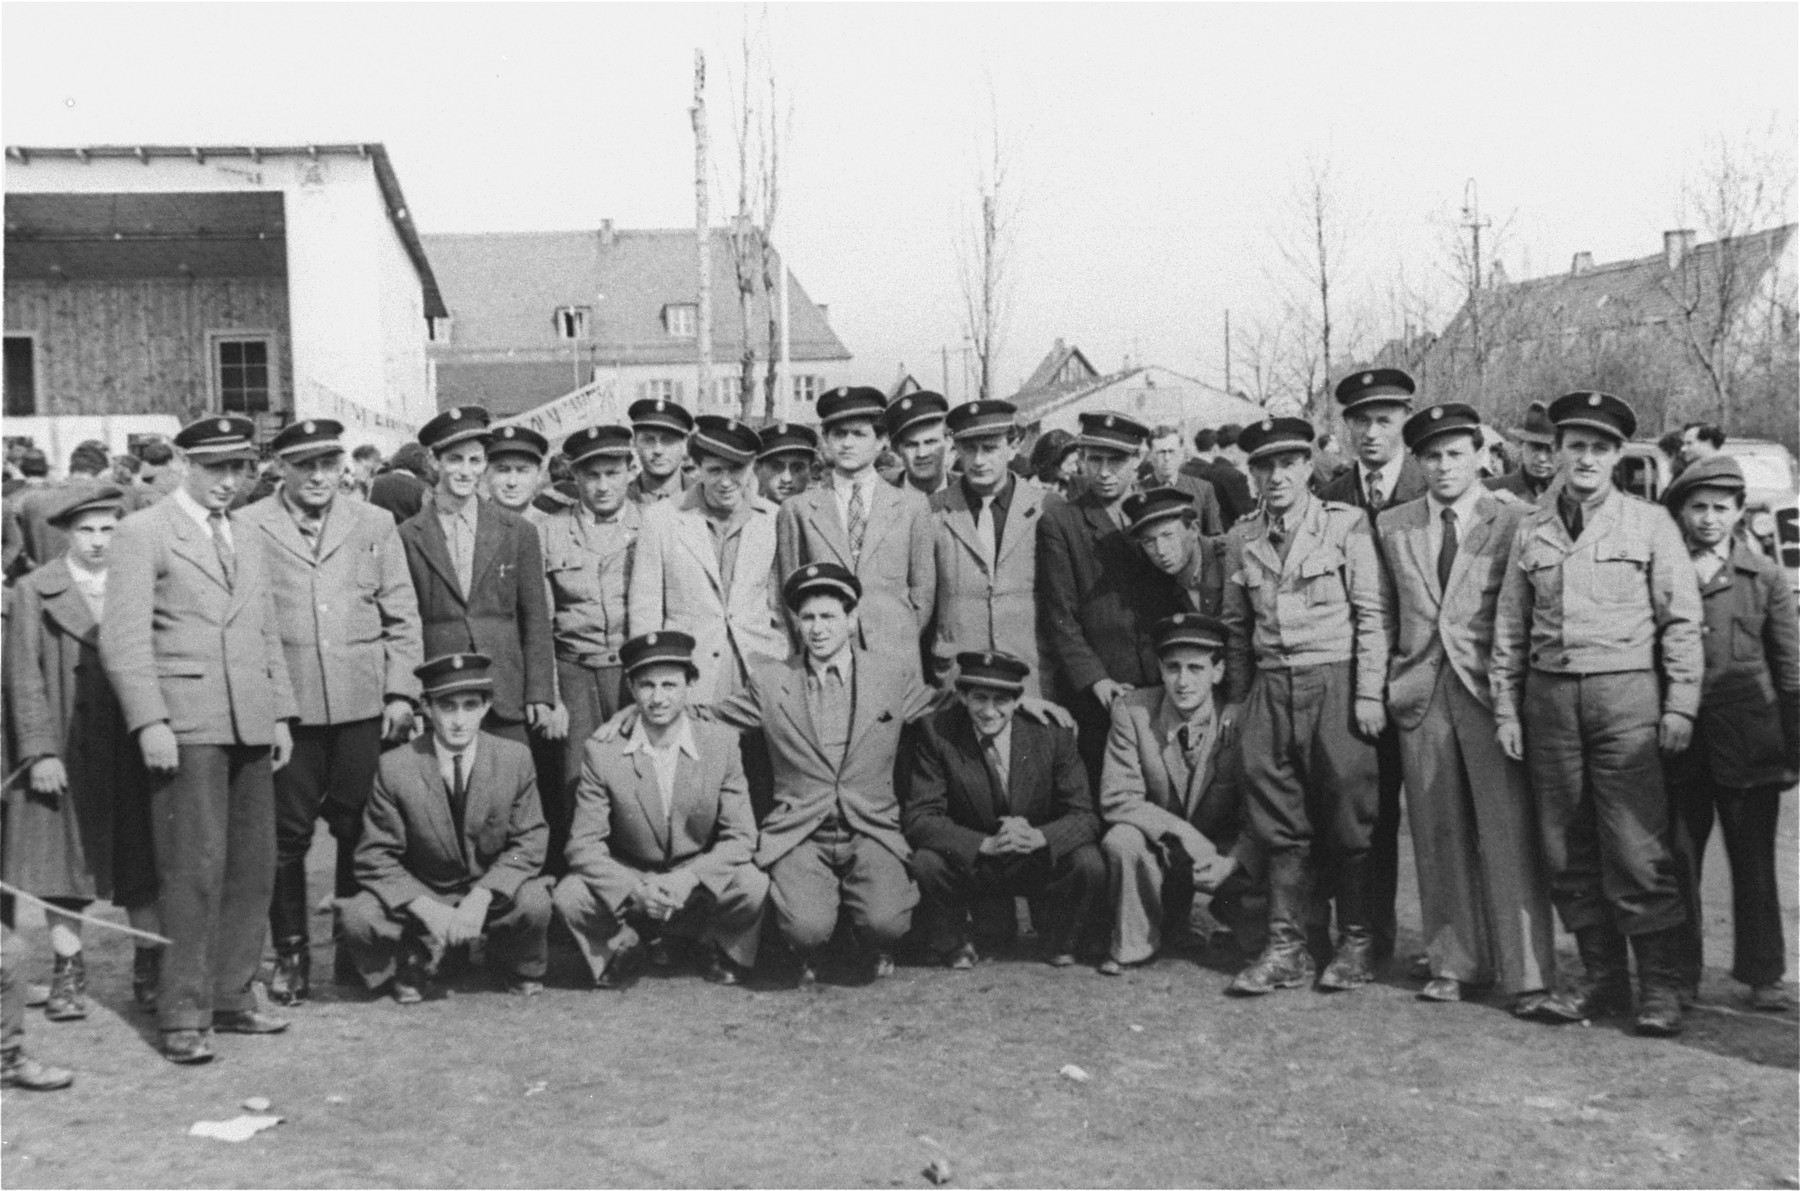 Group portrait of Jewish police at the Neu Freimann displaced persons camp.